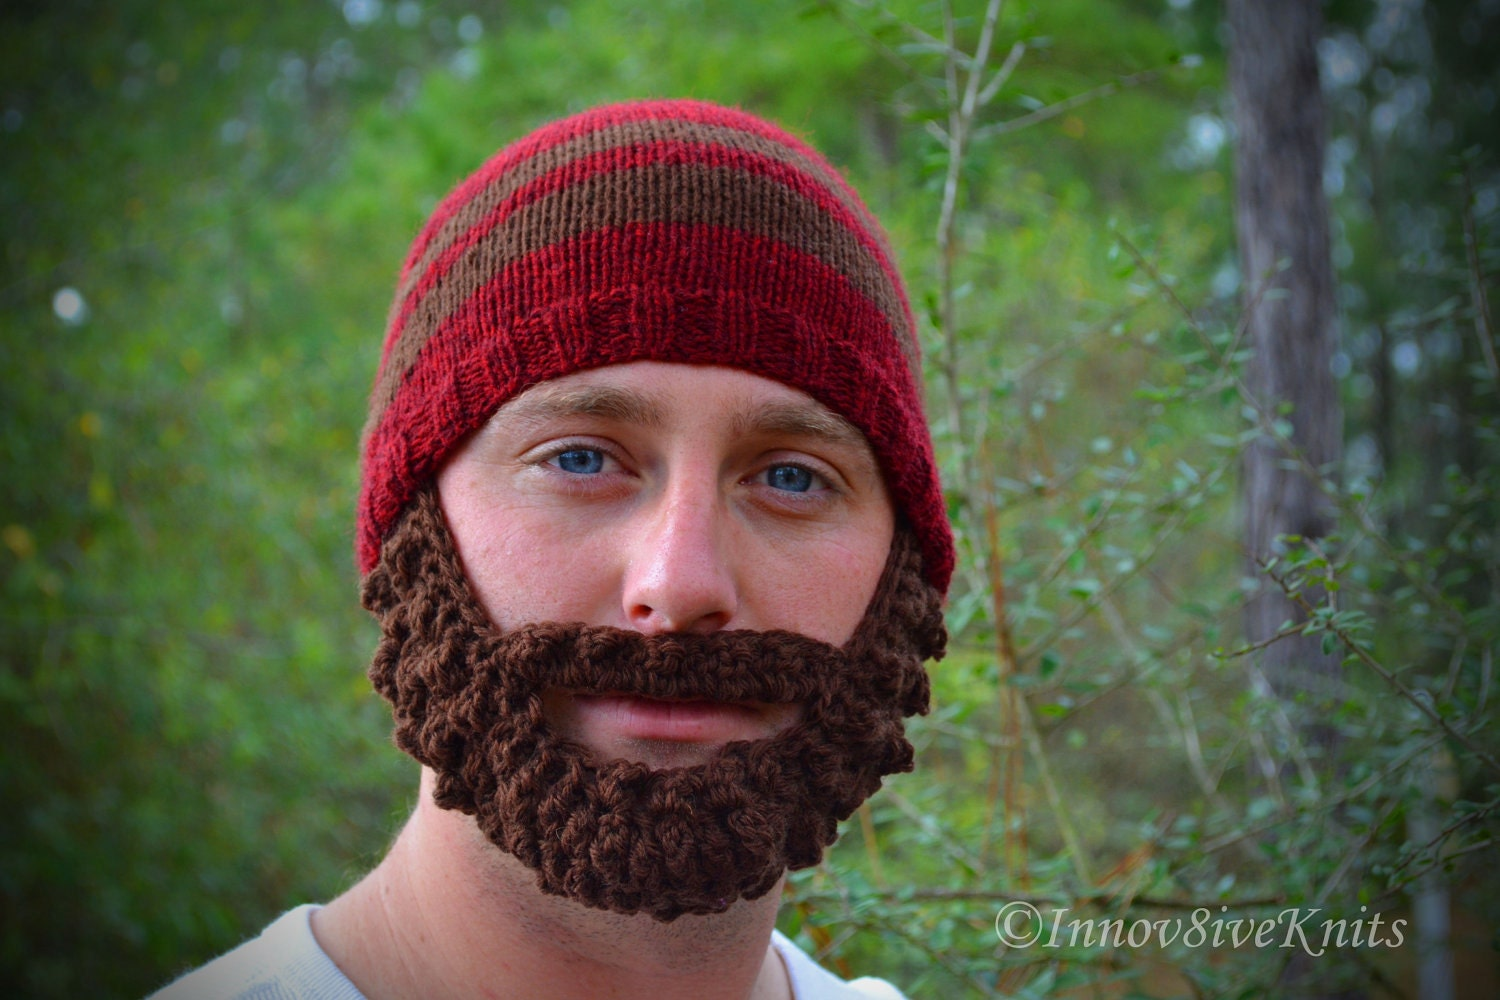 Bearded Beanie Knitting Pattern : Bearded Beanie Hat Hand Knit and Crochet in Red and Brown with